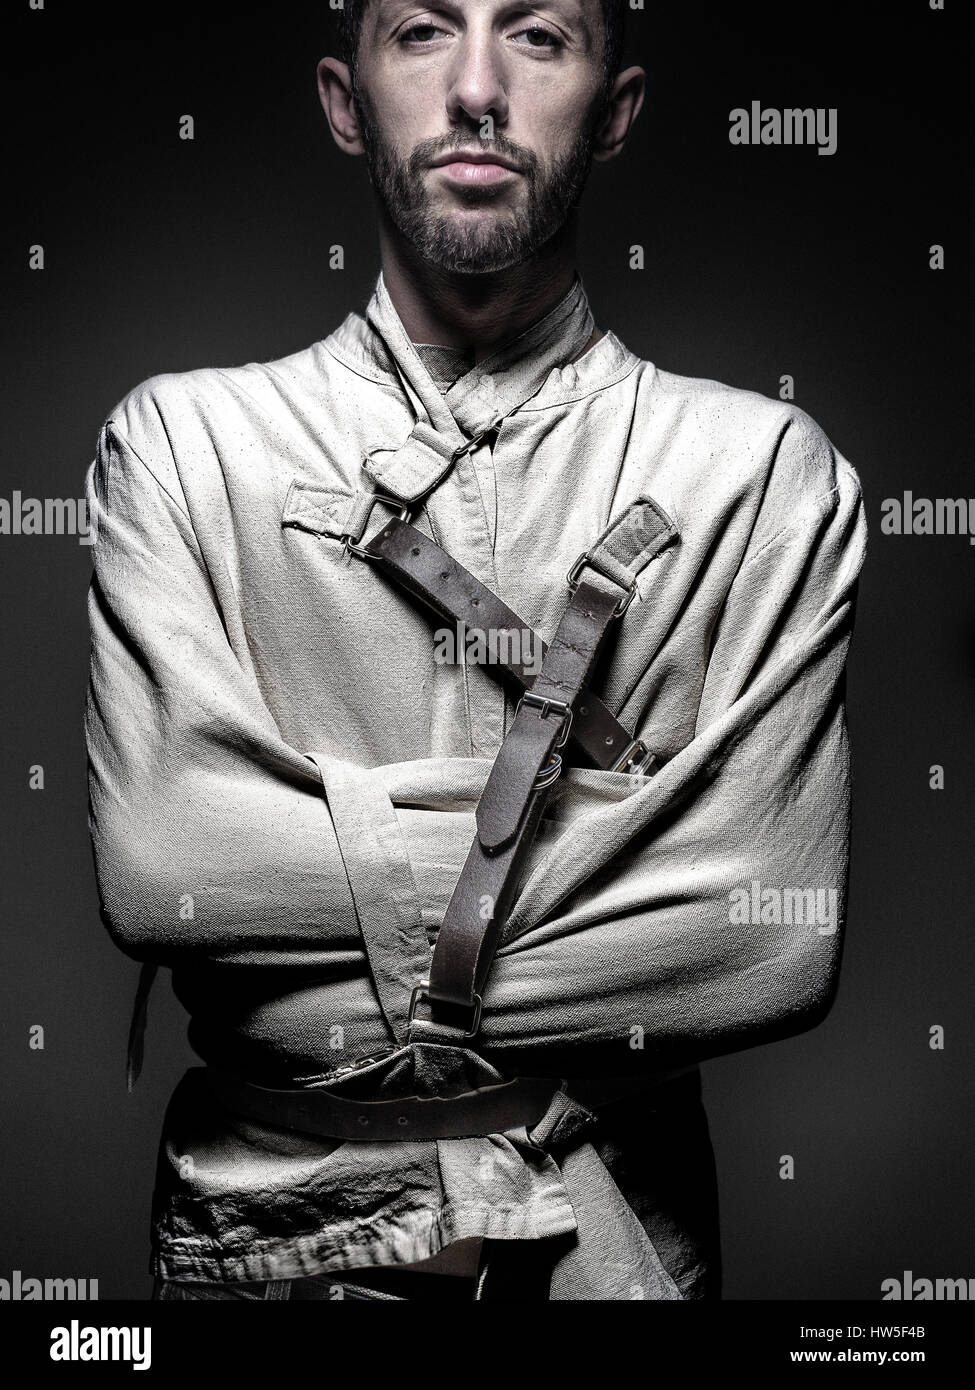 straightjacket Stock Photo, Royalty Free Image: 135960619 - Alamy